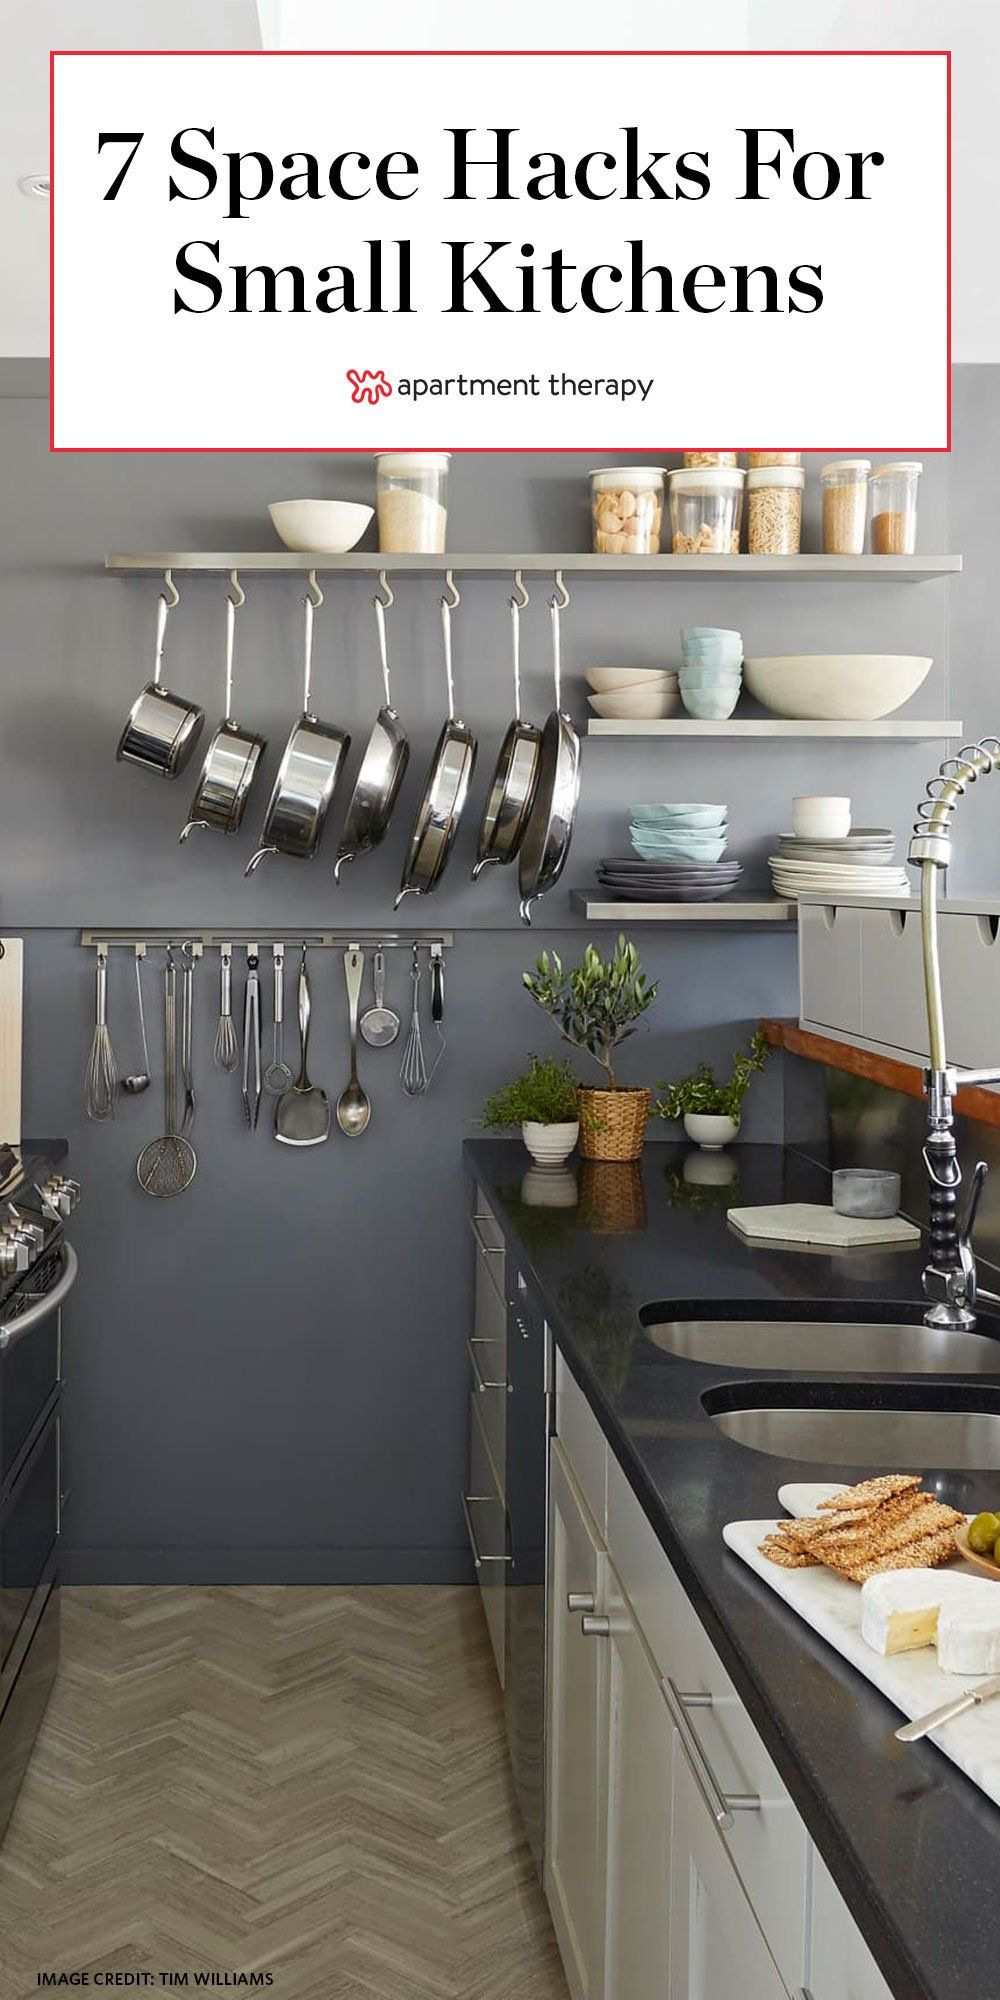 7 Small Kitchen Items That Make A Big Difference According To Interior Designers Small Kitchen Items Small Kitchen Storage Kitchen Remodel Small